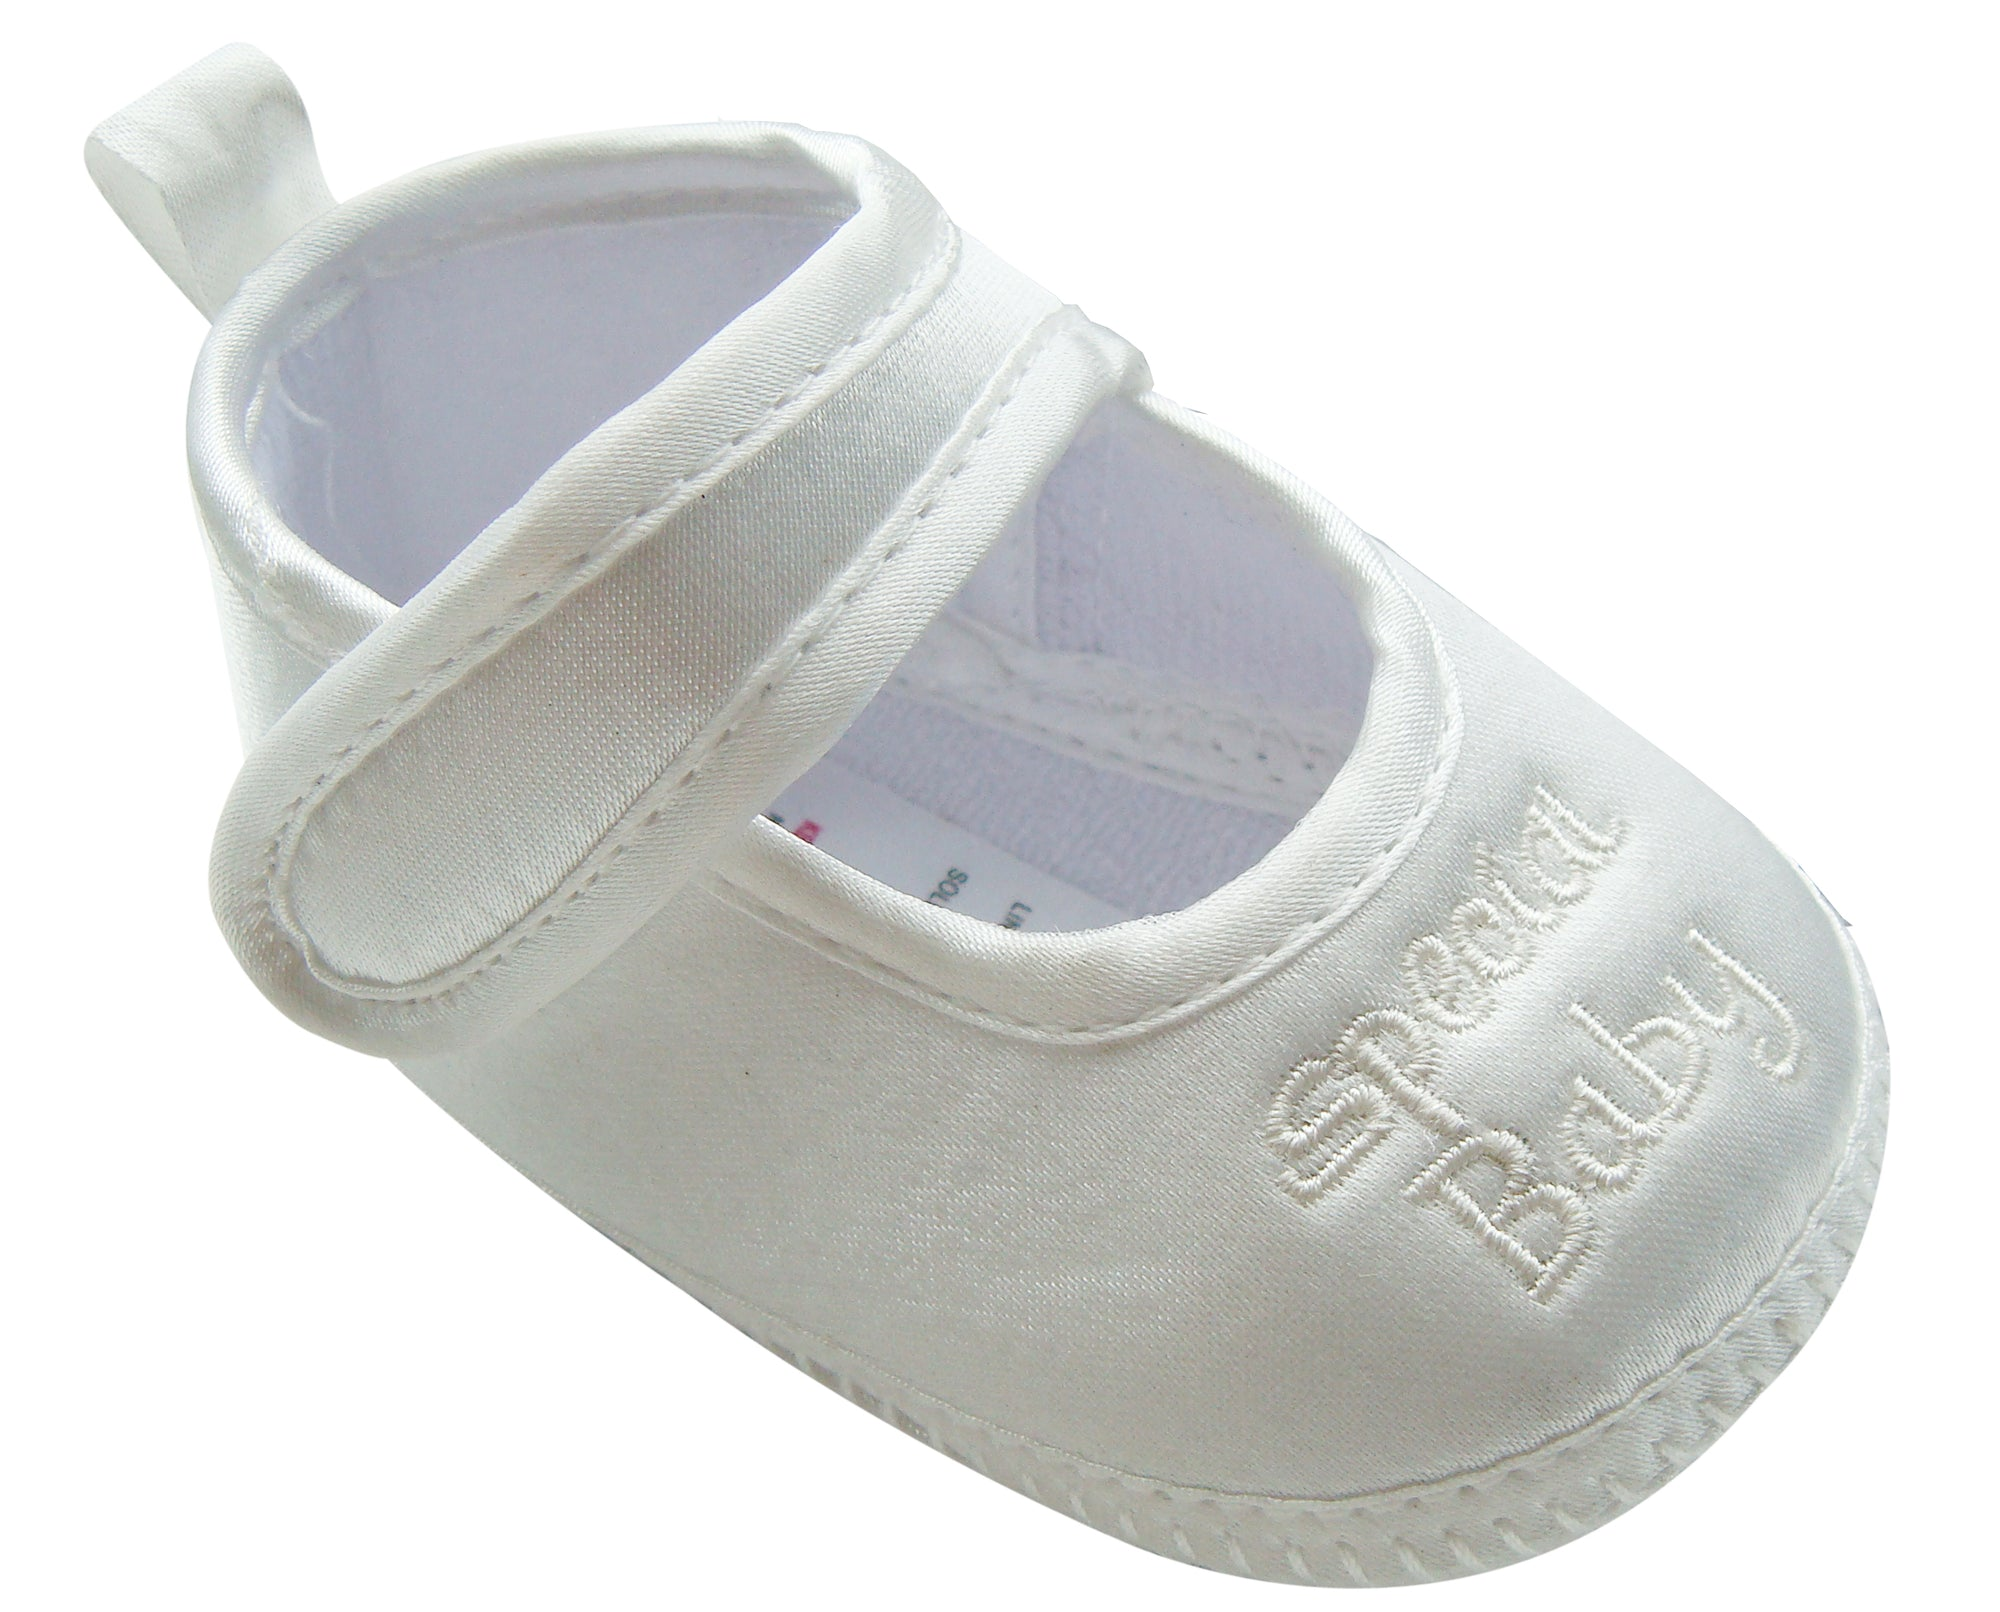 MABINI Baby Special Occasion Shoes